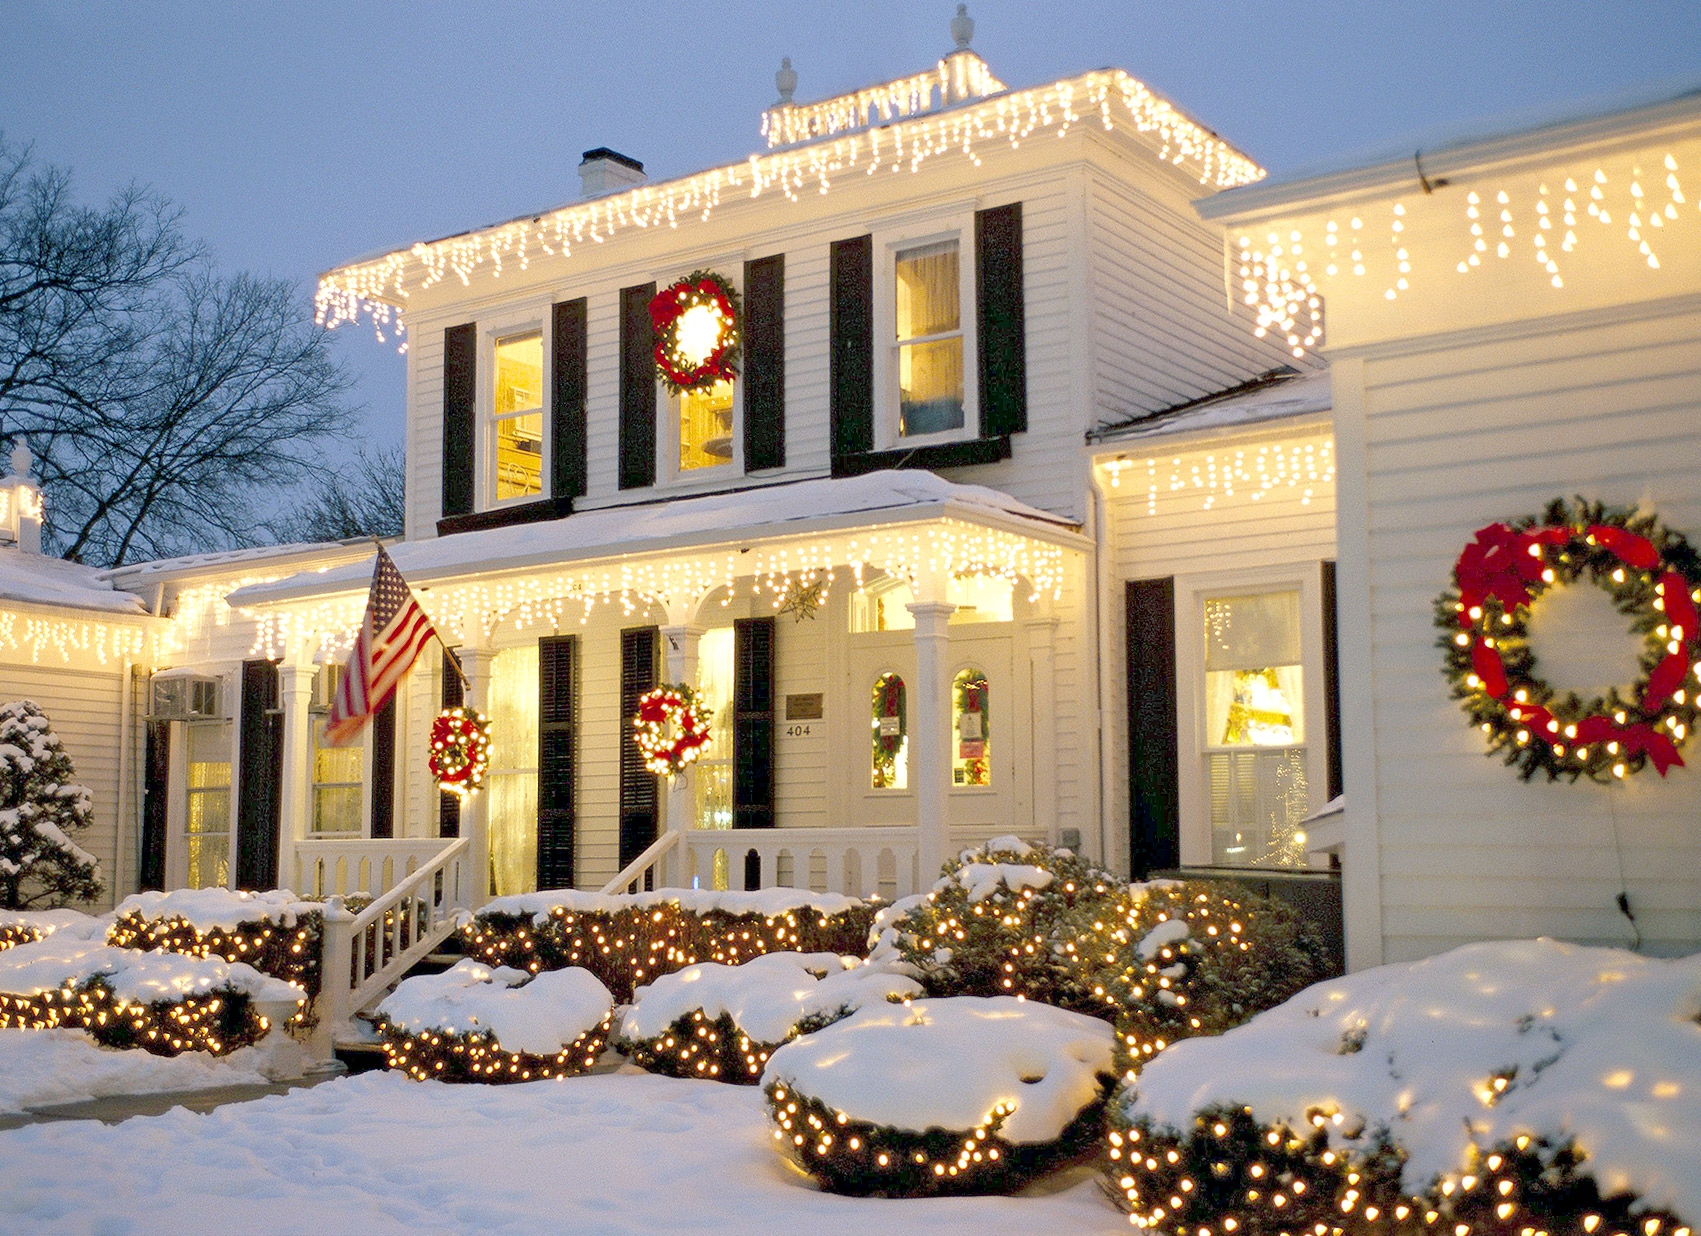 10 Ideas for the Best Outdoor Christmas Decorations on the Block